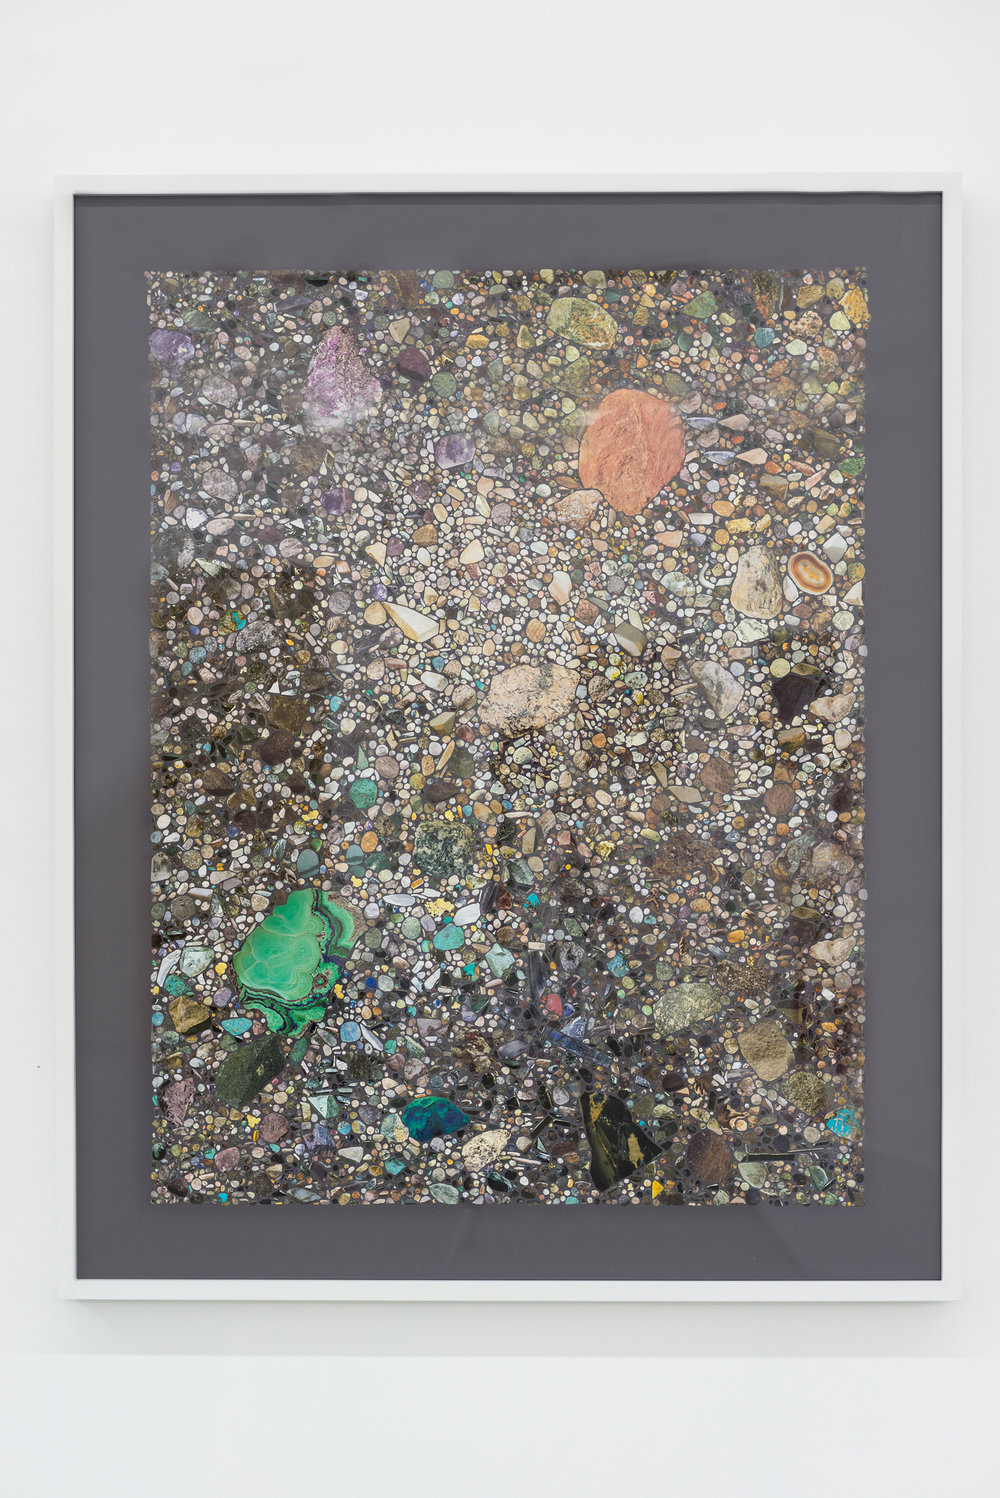 Rocks & Mineral VIII , 2016 Collage on archival paper 40 x 32 inches, framed